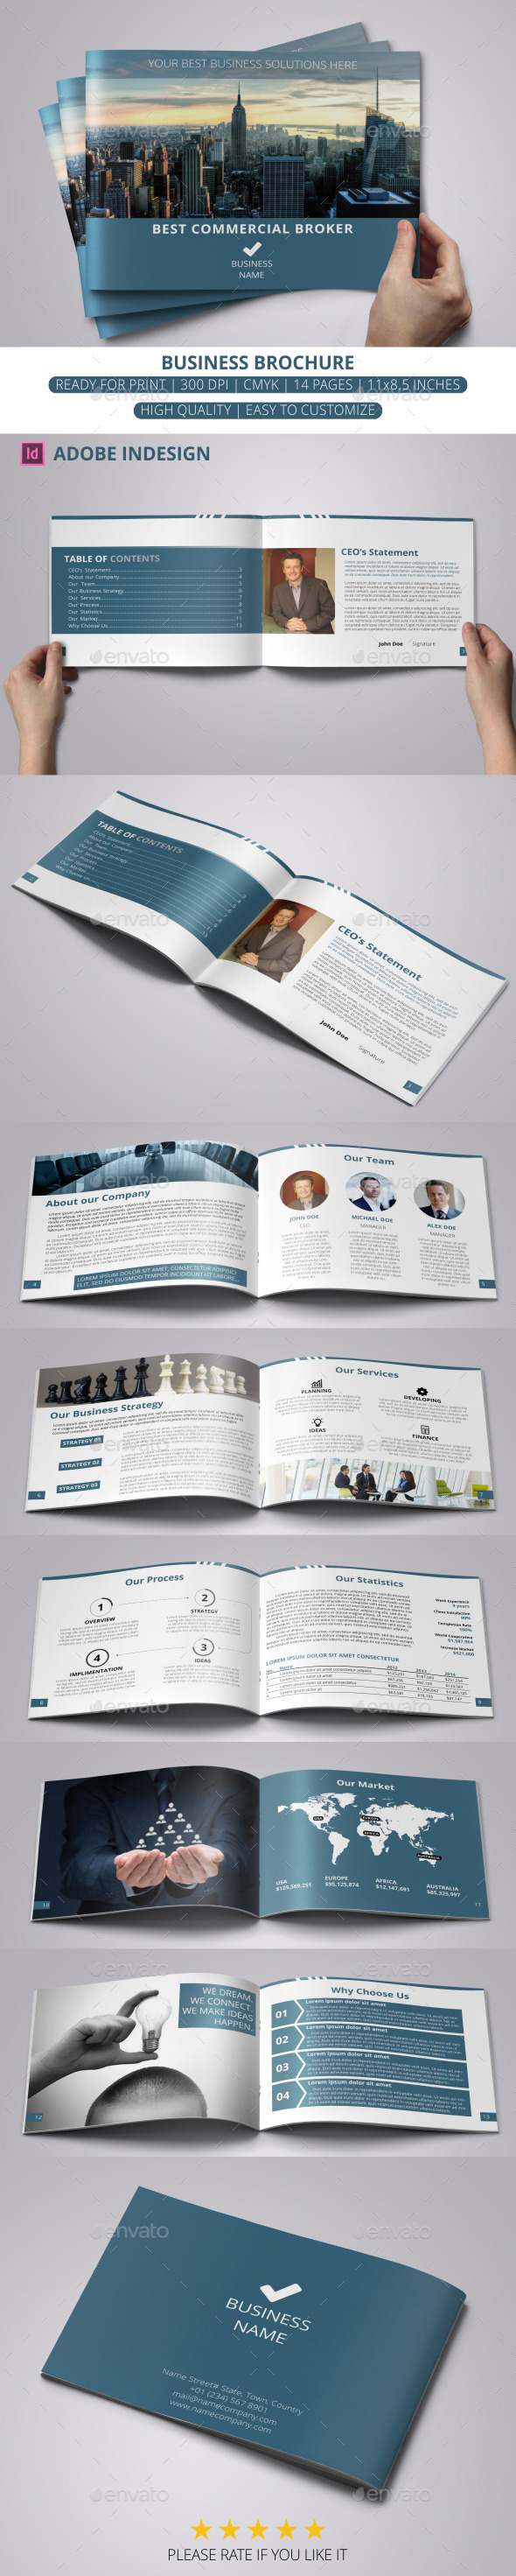 GraphicRiver Business Brochure 11413062